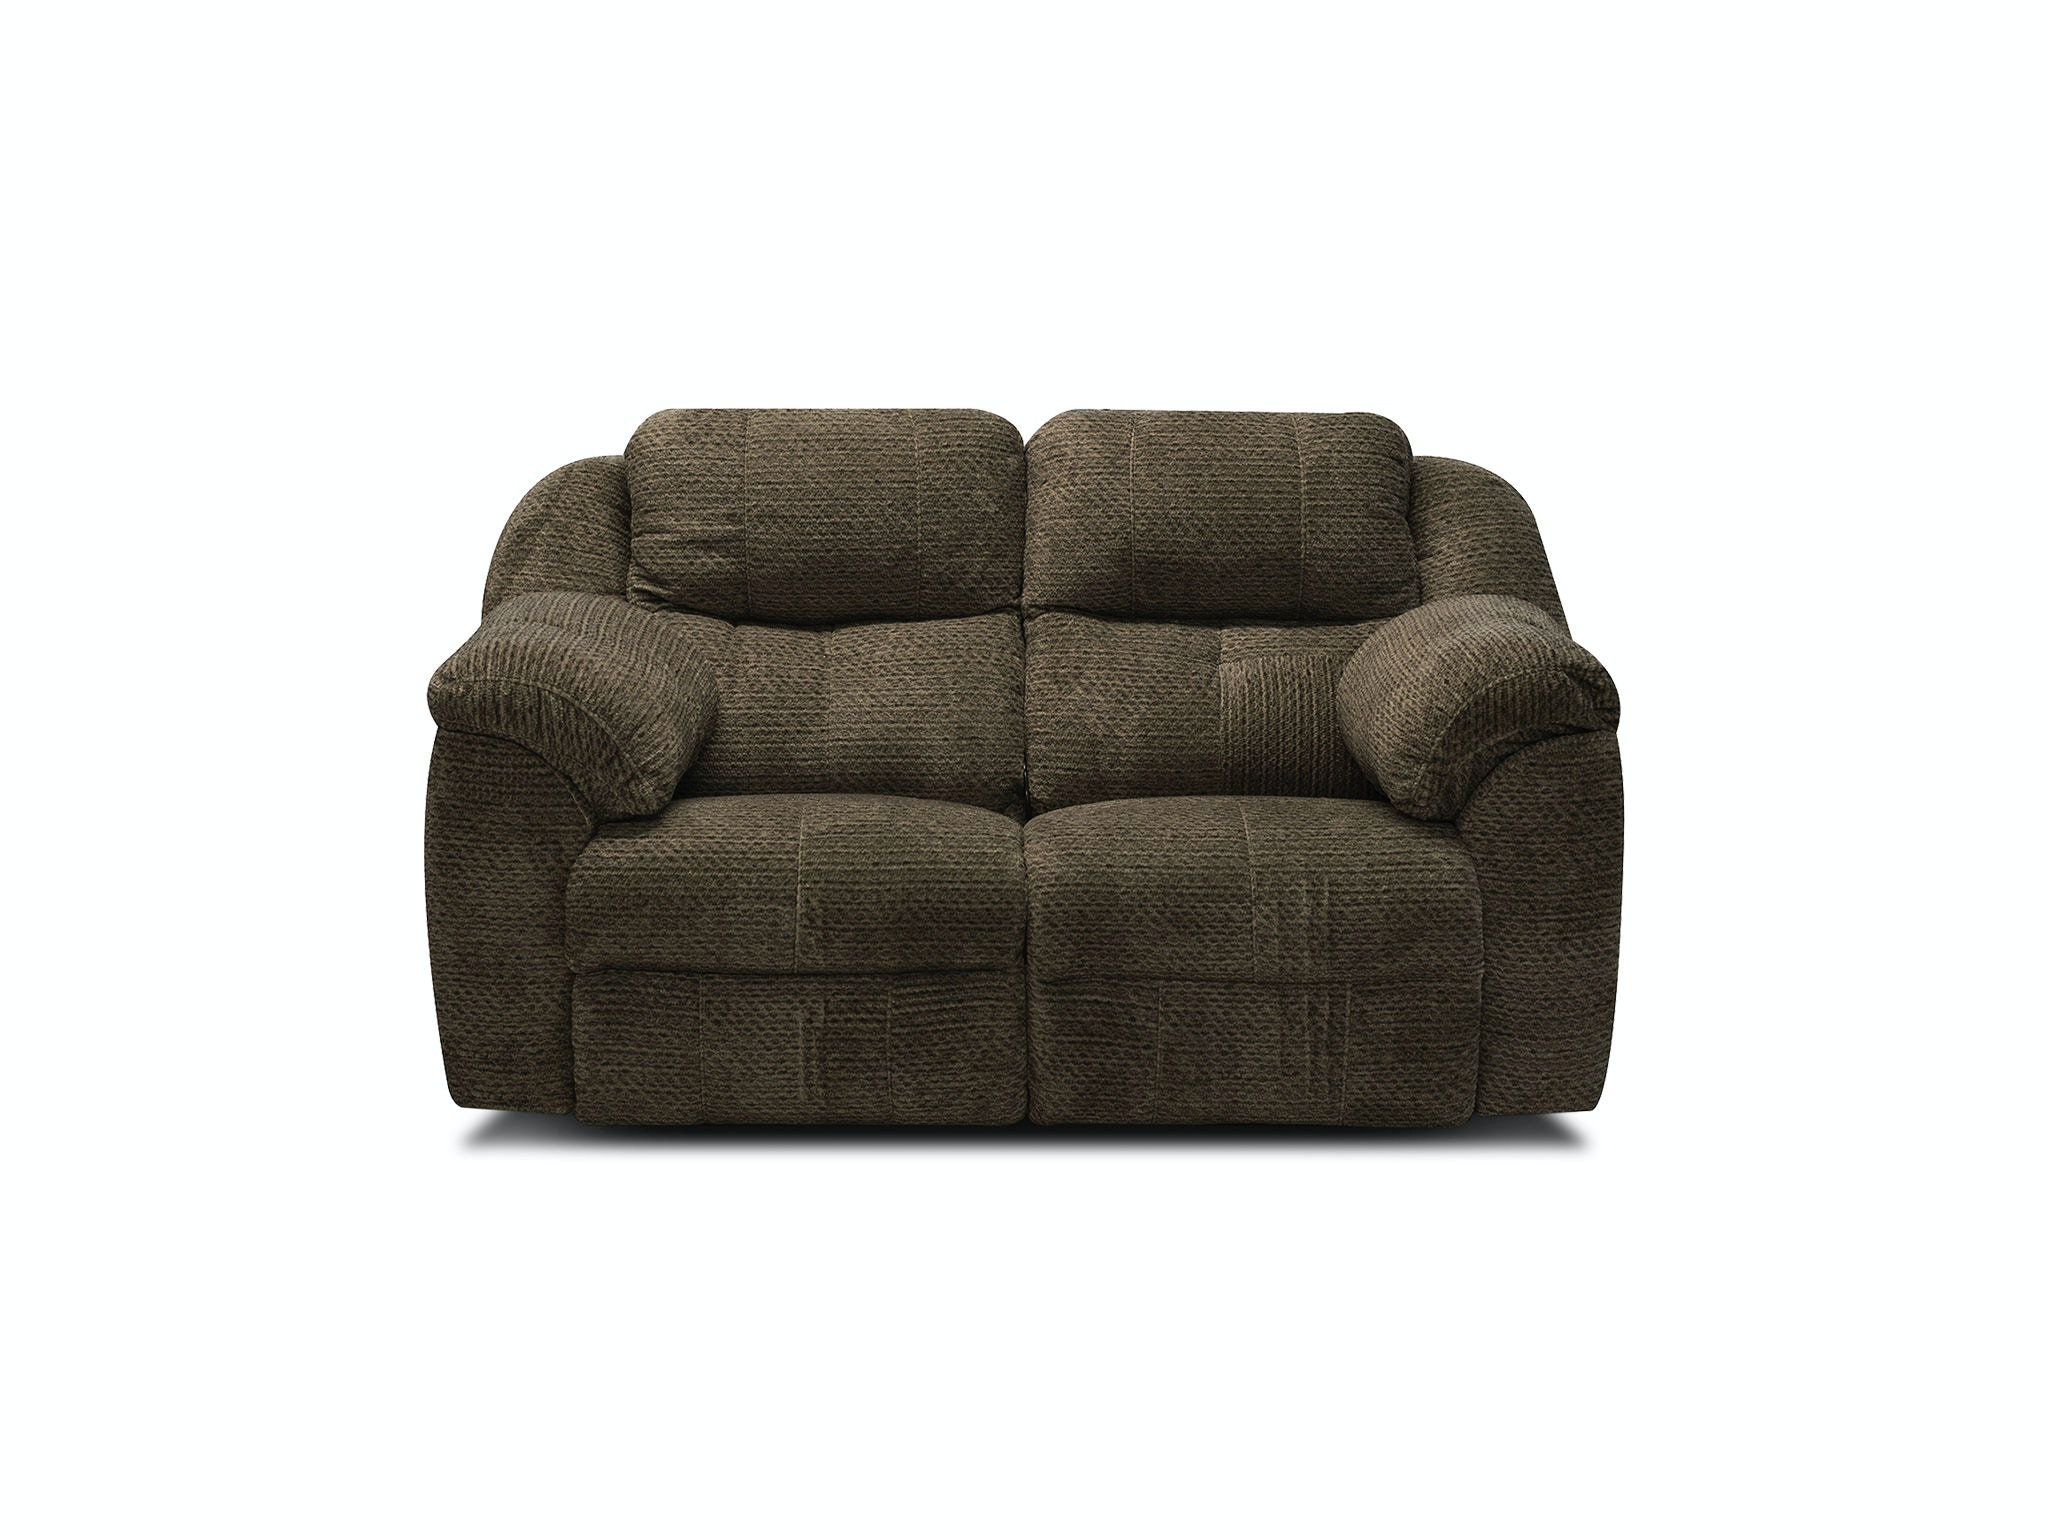 England Living Room Ez6d00r Double Reclining Loveseat Ez6d03r England Furniture New Tazewell